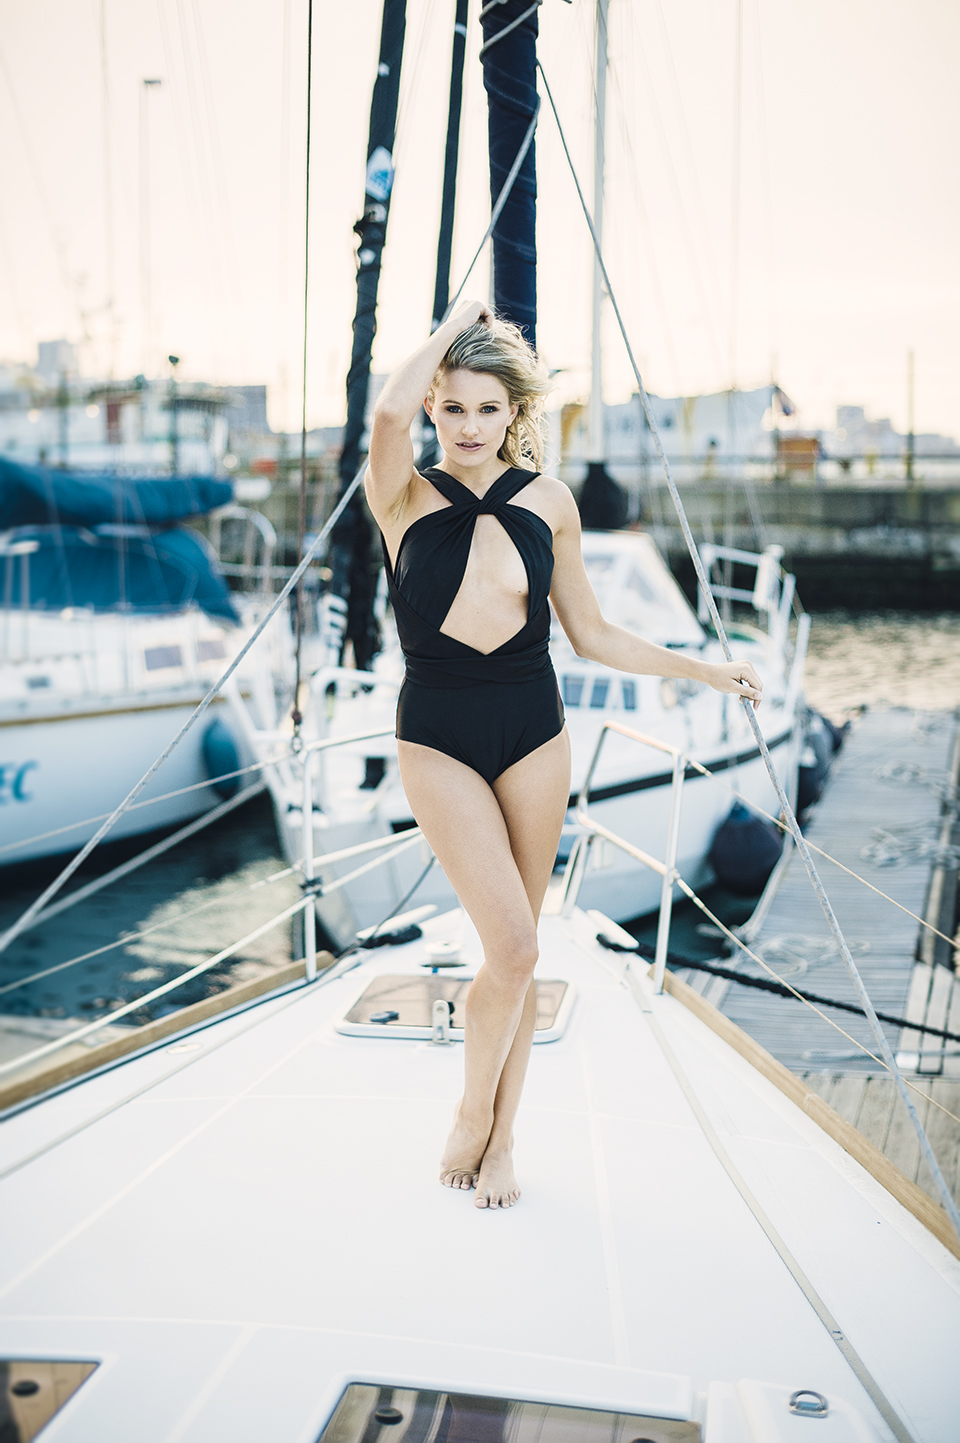 RyanParker_CapeTown_Photographer_Editorial_Fashion_Yacht_Nautical_RyanParker_CapeTown_Photographer_Editorial_Fashion_Yacht_Nautical_DSC_1699.jpg